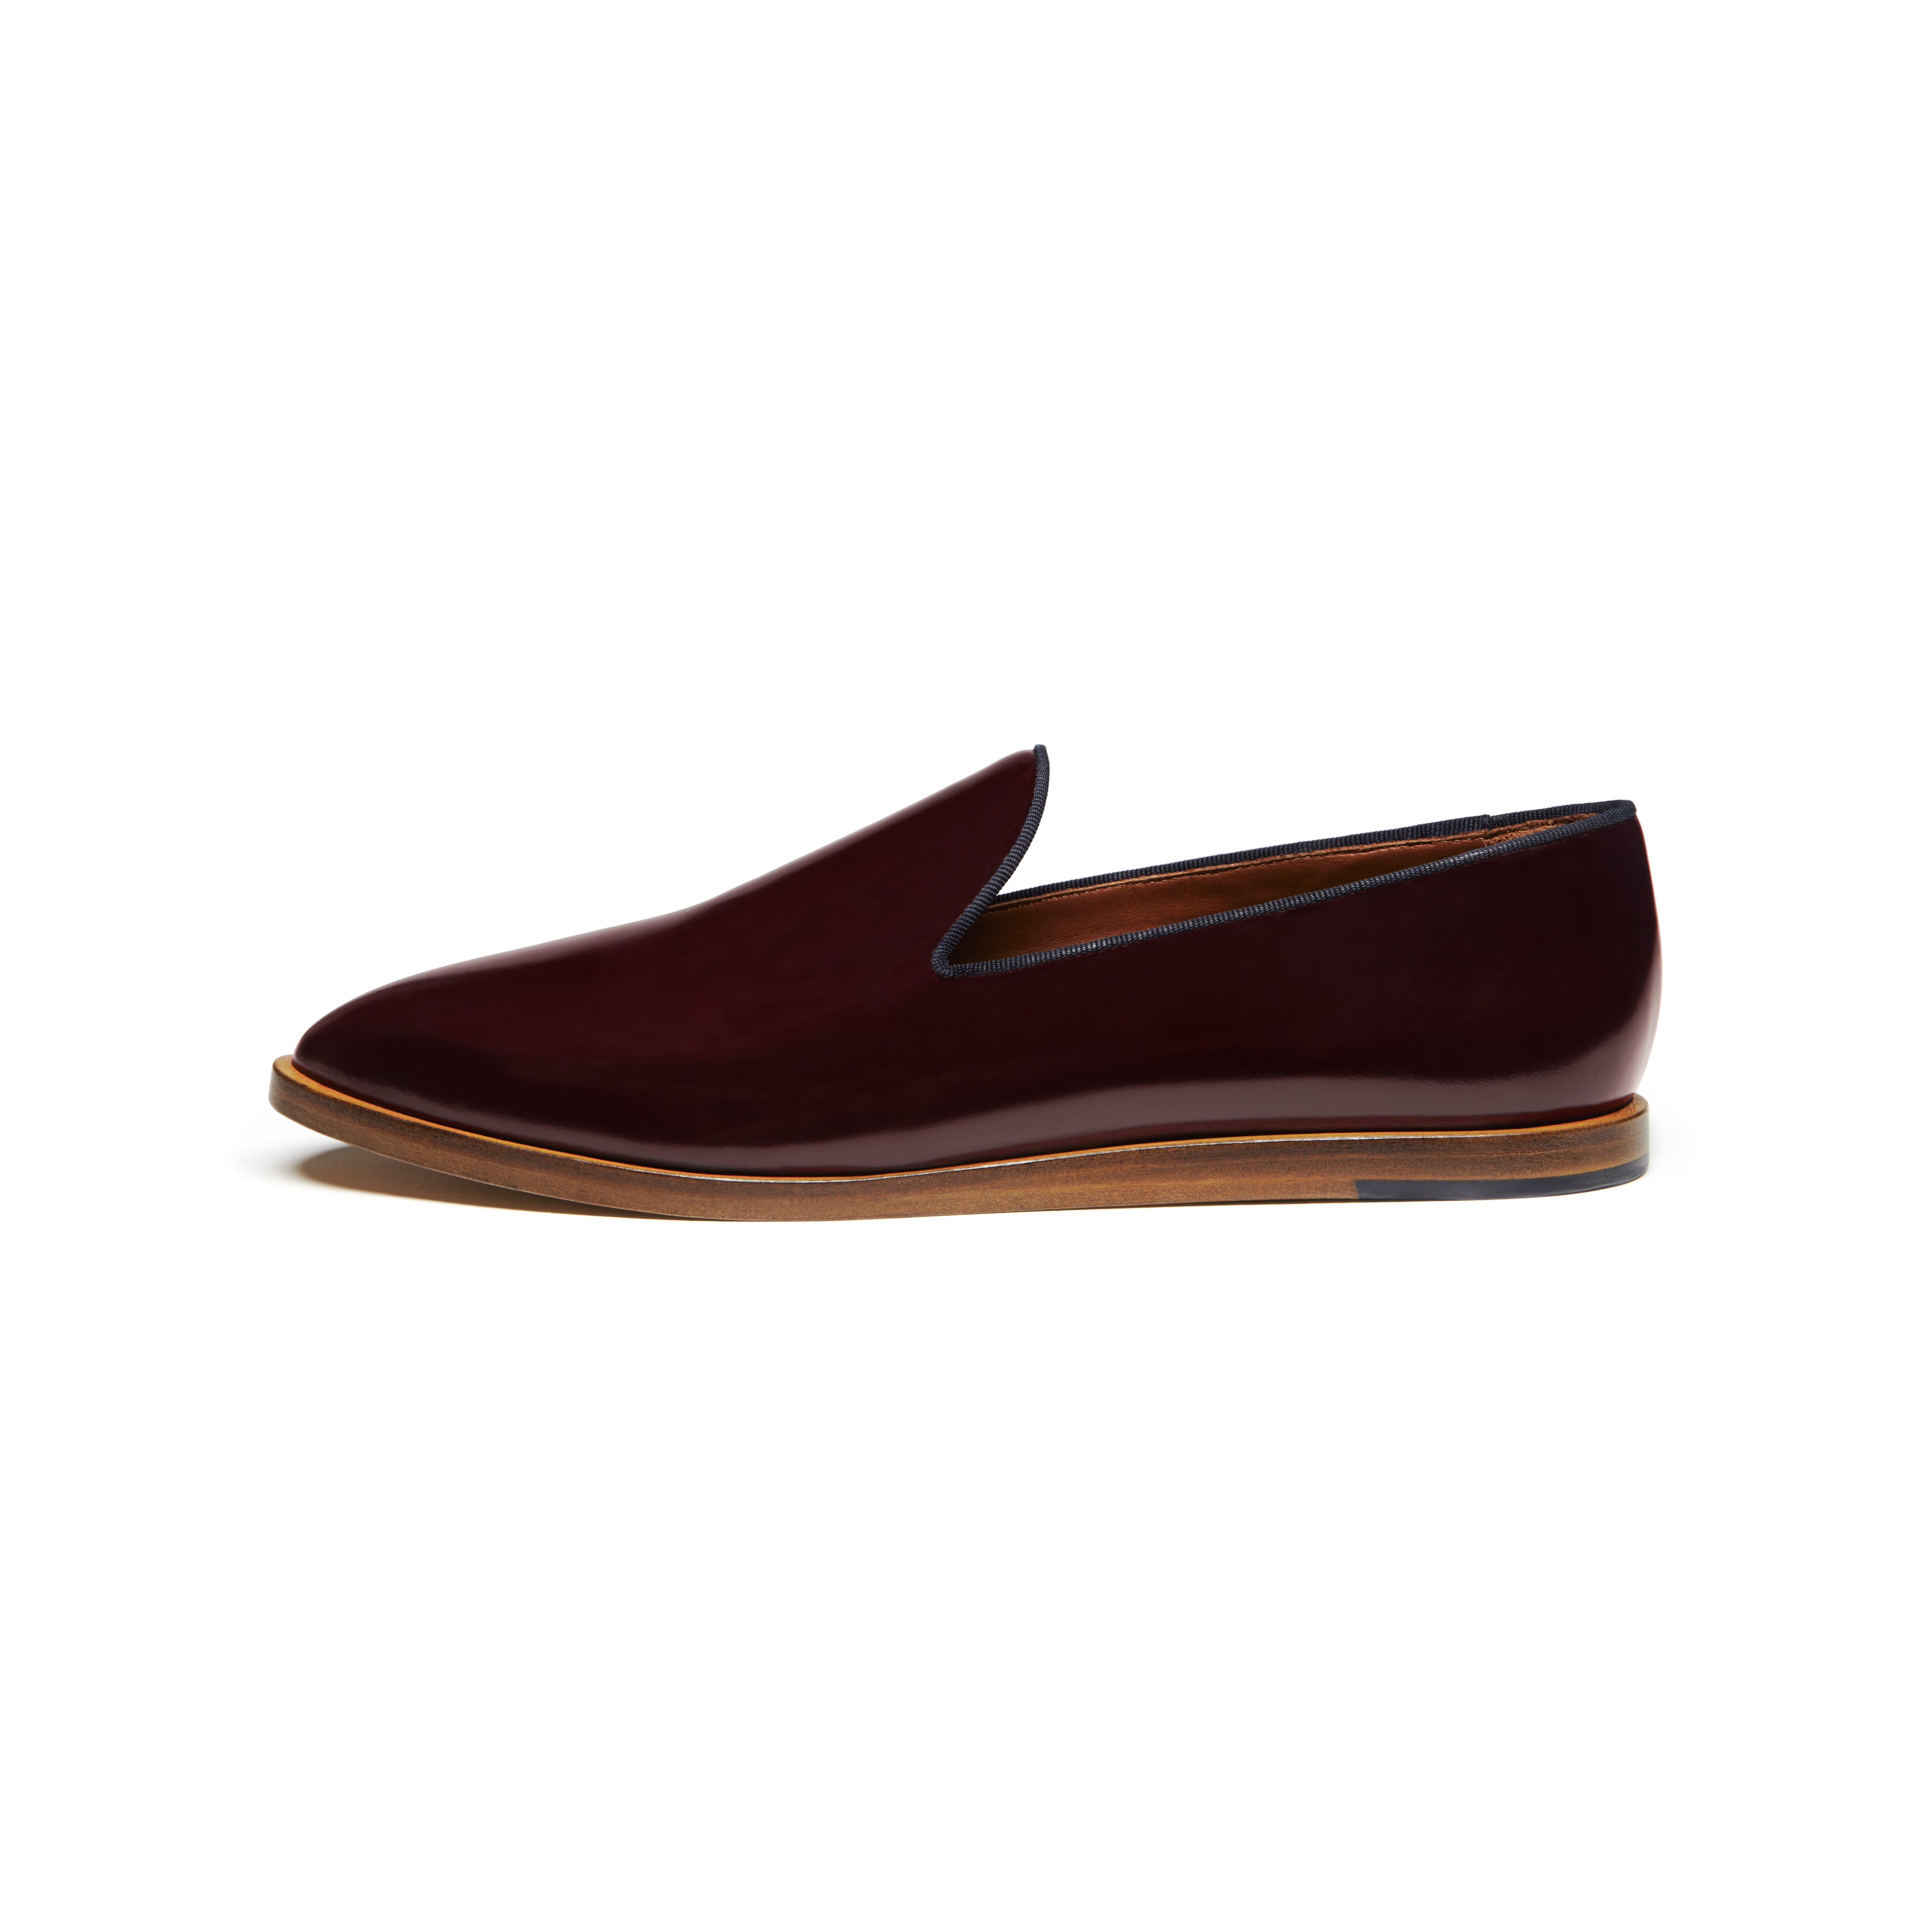 eecc4daadac Lyst - Mulberry Loafer in Red